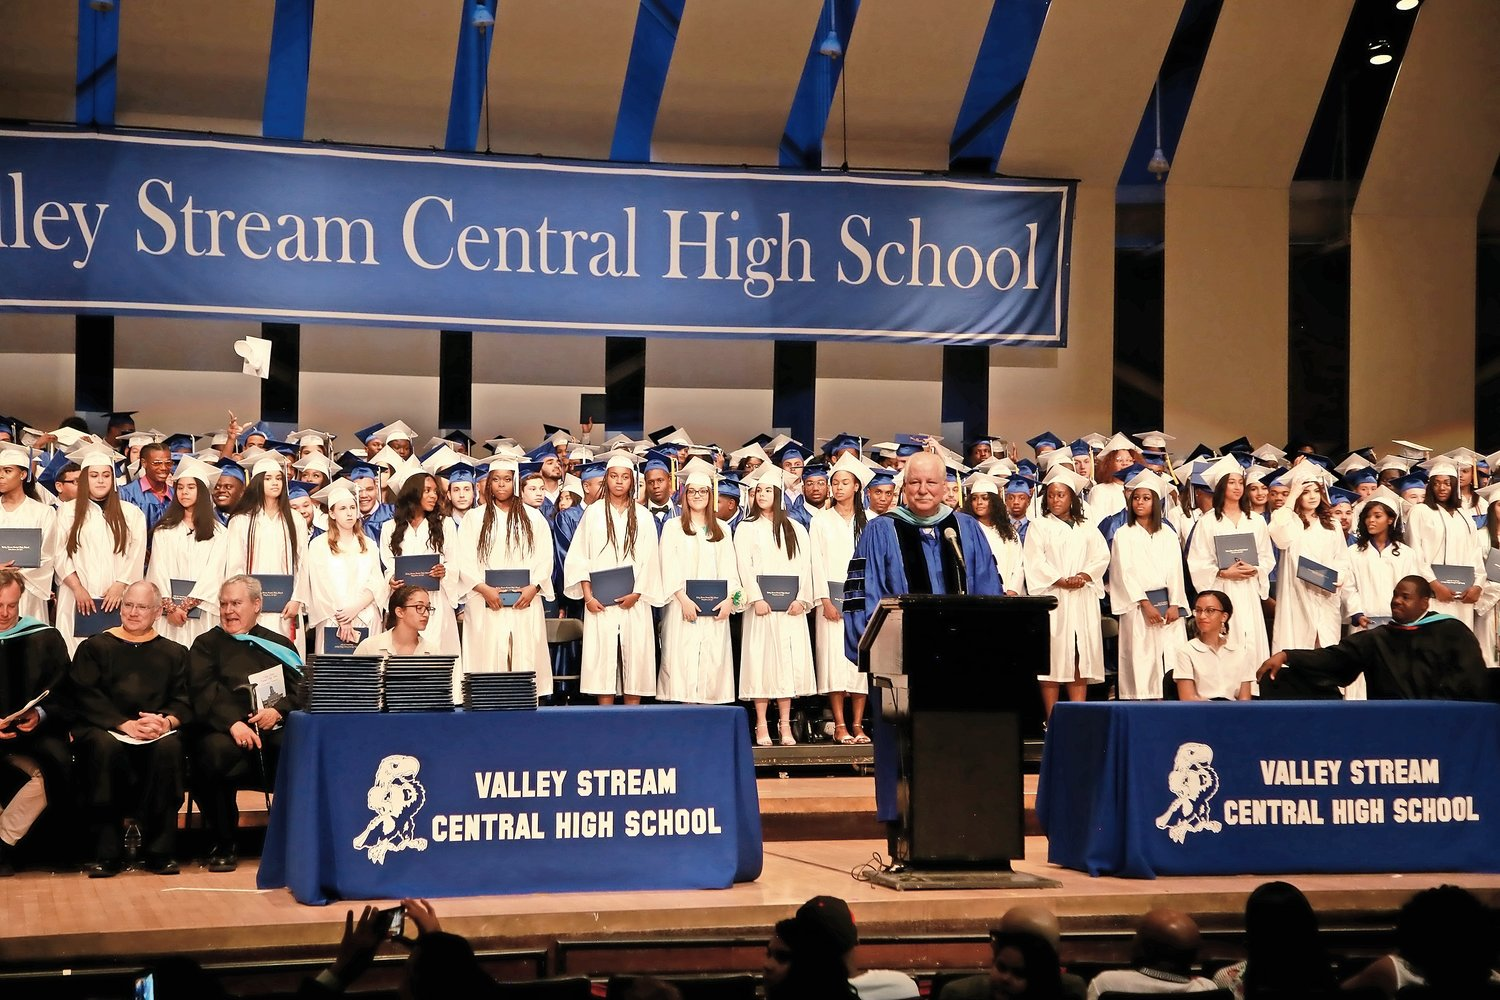 Principal Joseph Pompilio presented the new graduates.